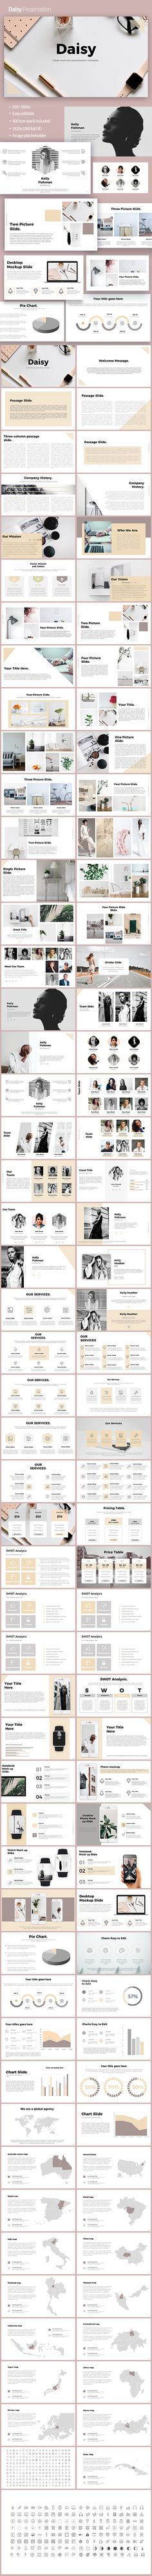 Daisy Powerpoint Template - PowerPoint Templates Presentation Templates